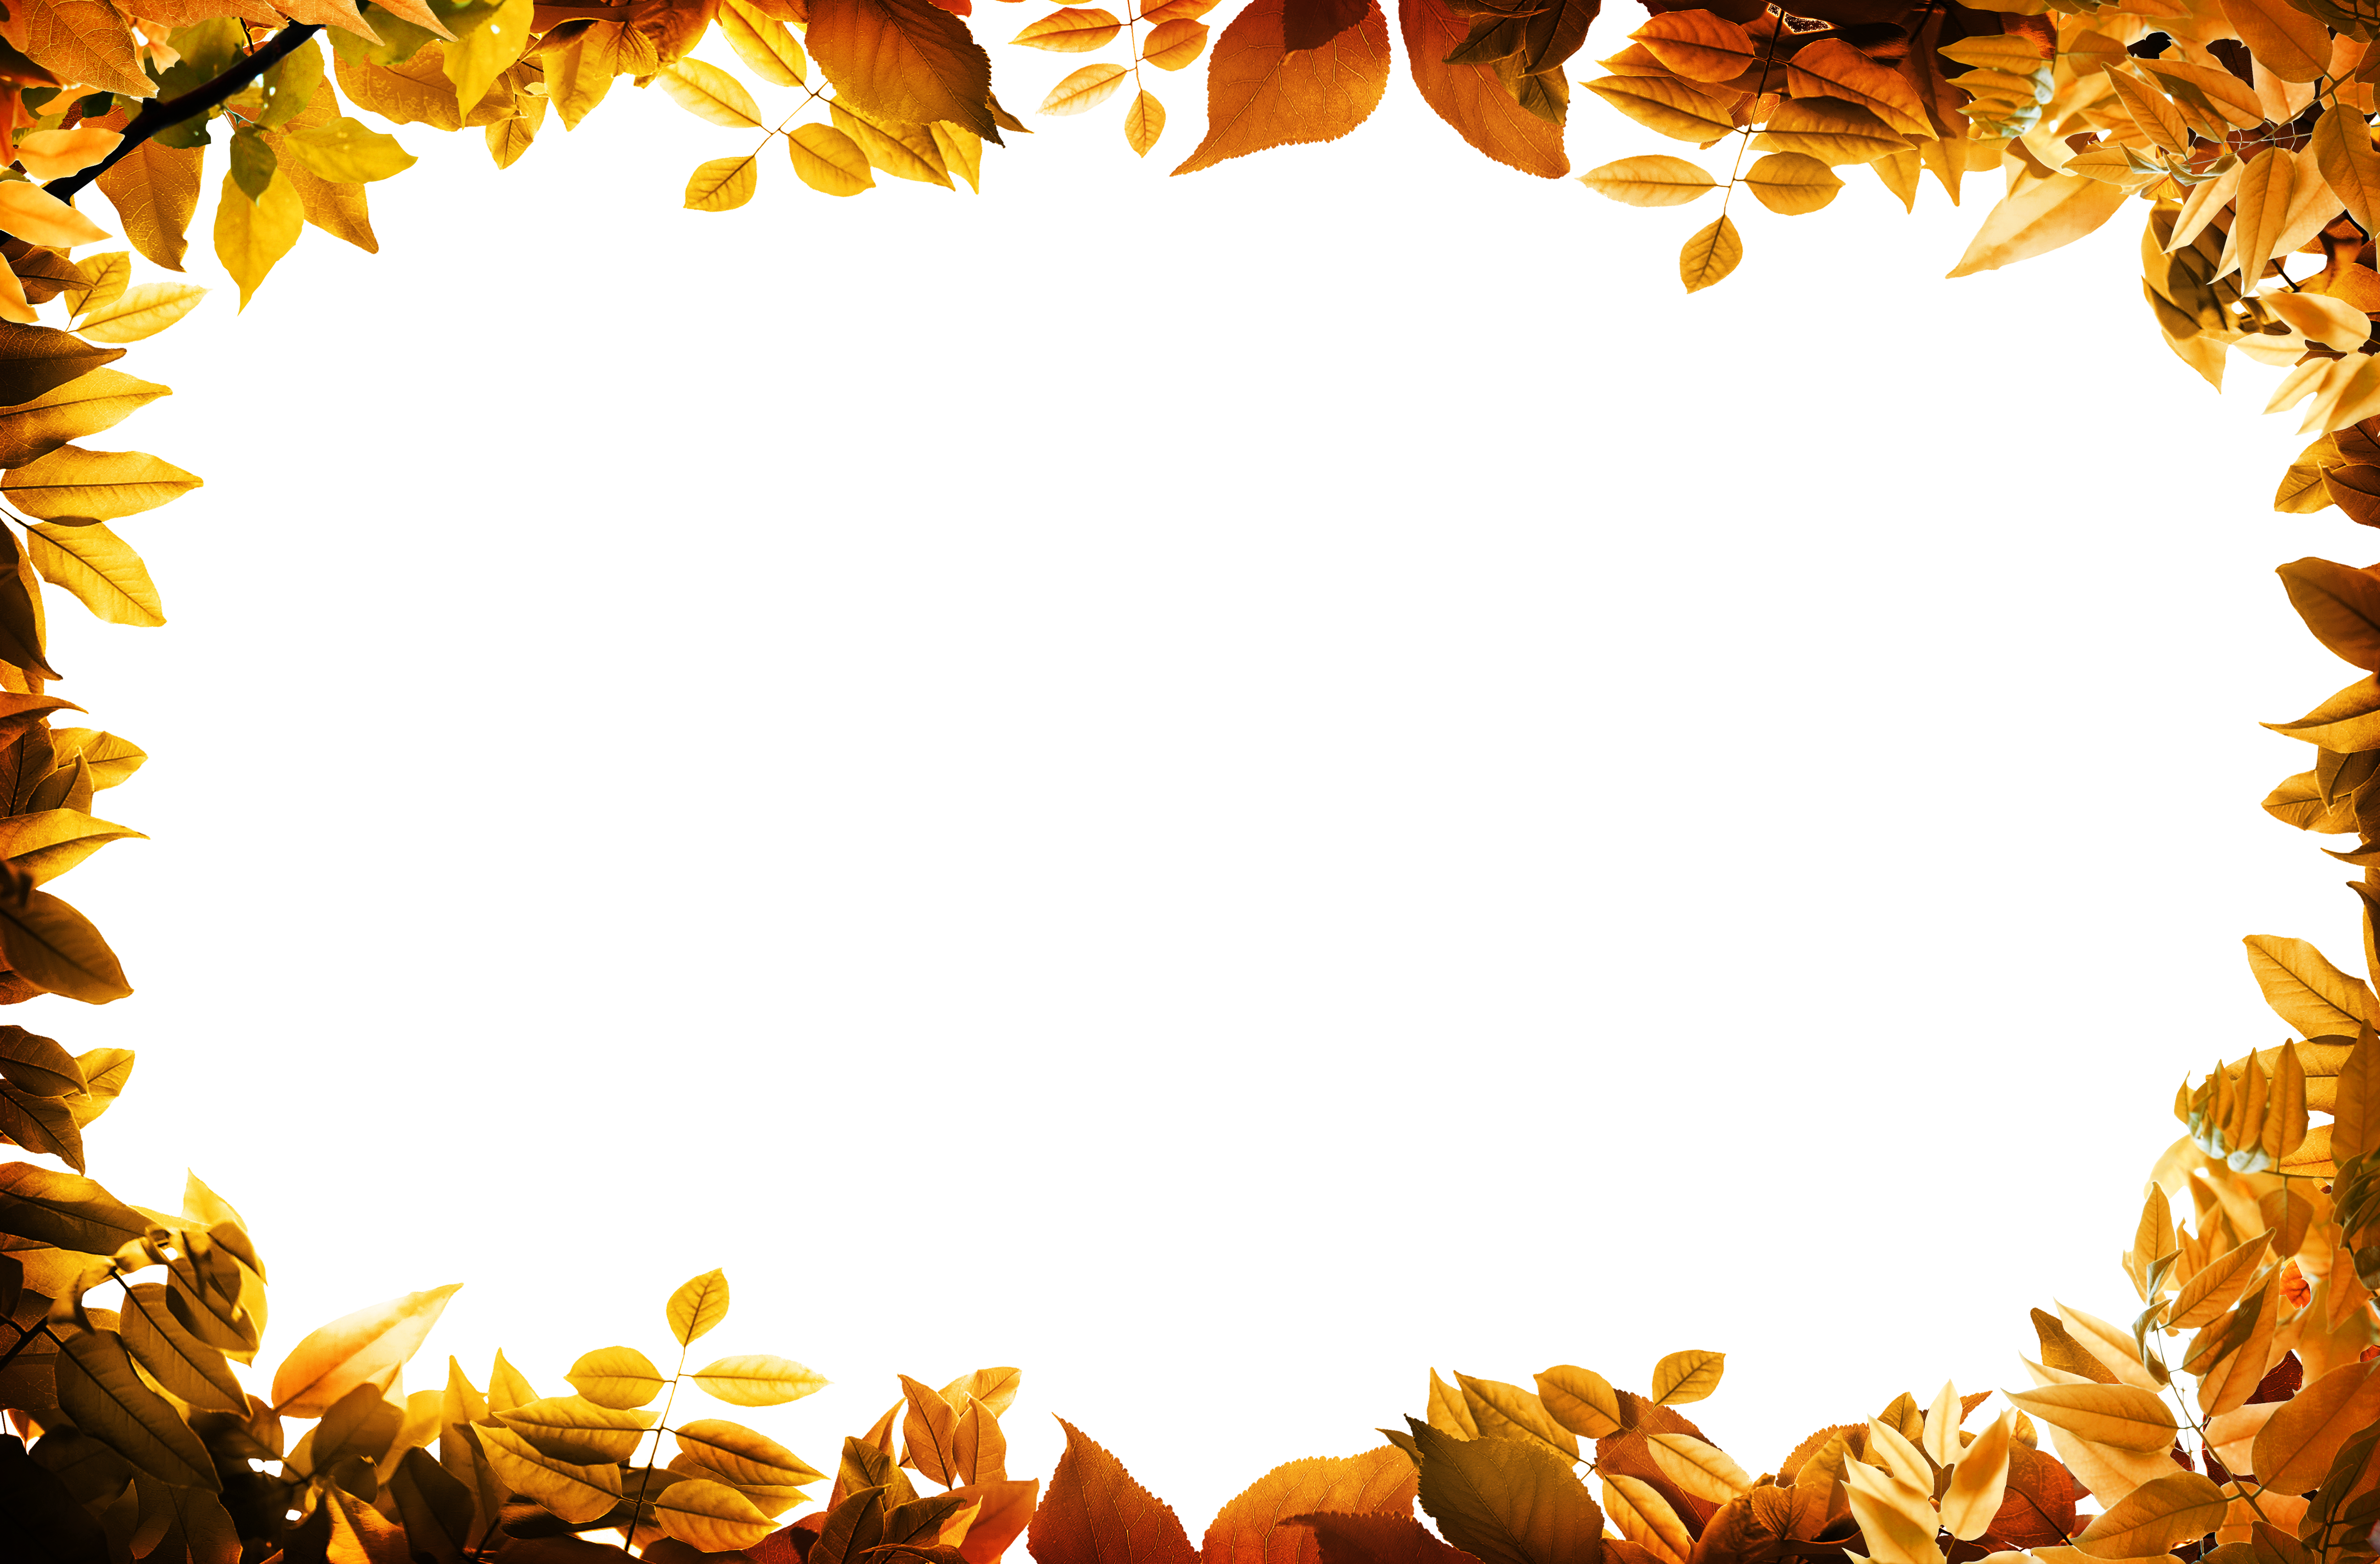 Fall Computer Backgrounds Png Free Fall Computer Backgrounds Png Transparent Images 55853 Pngio